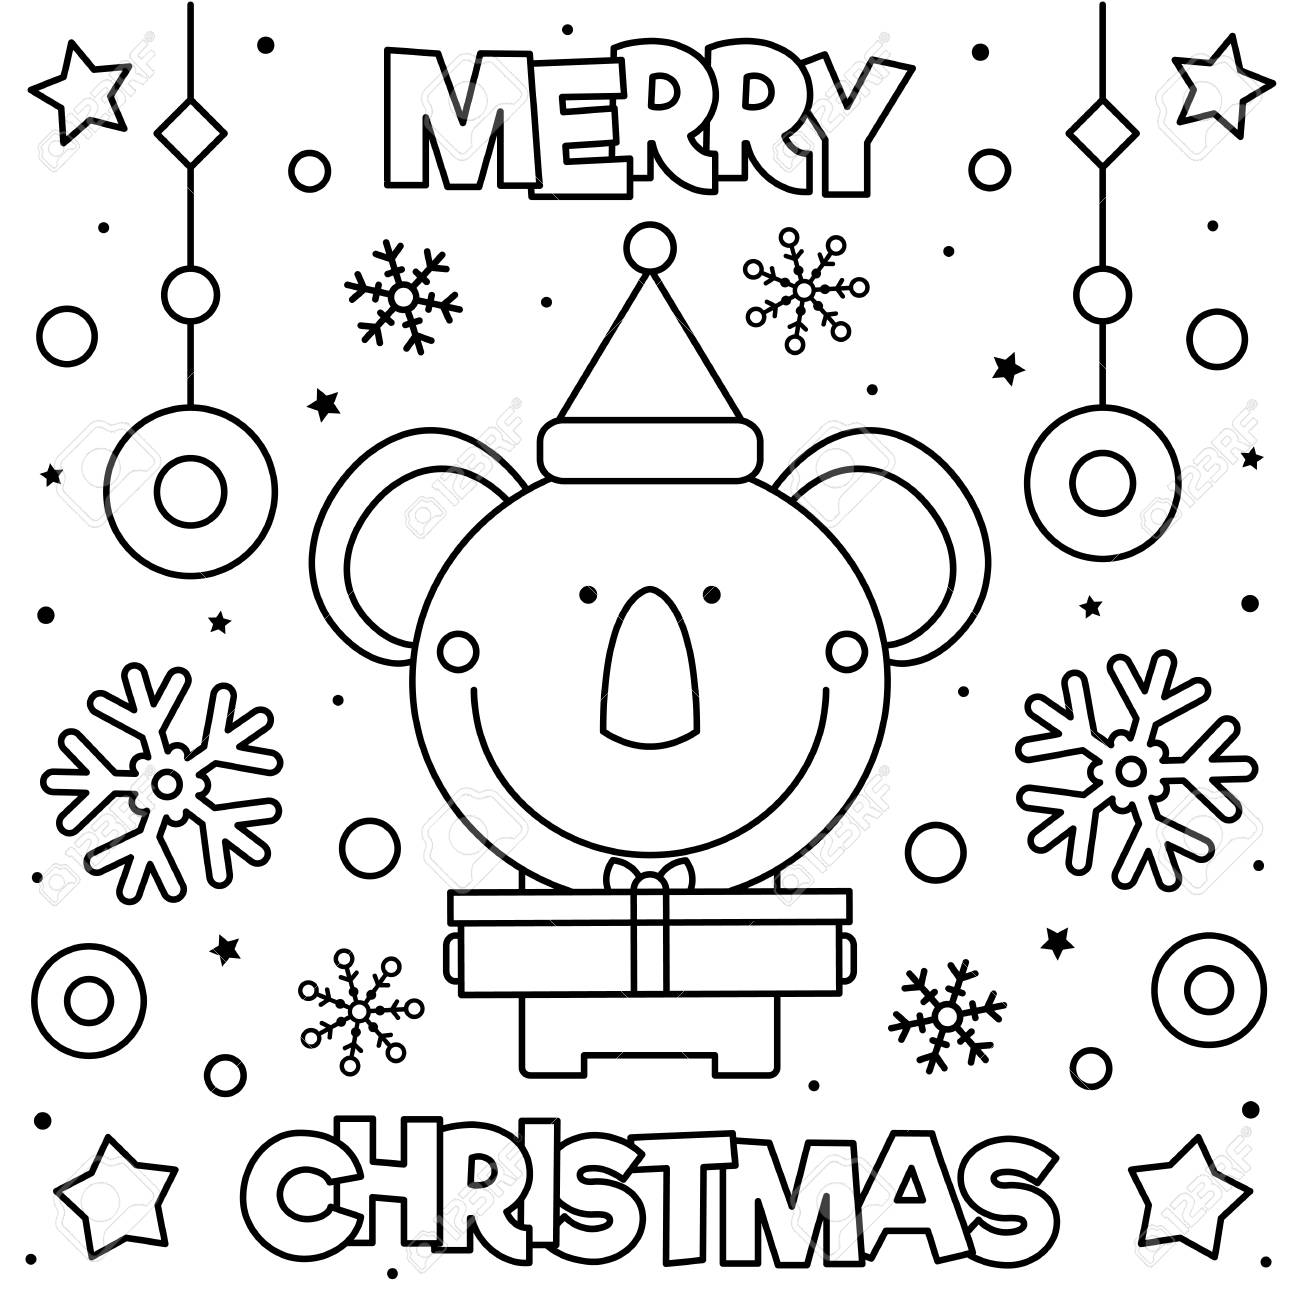 Merry Christmas. Coloring page. Black and white vector illustration..